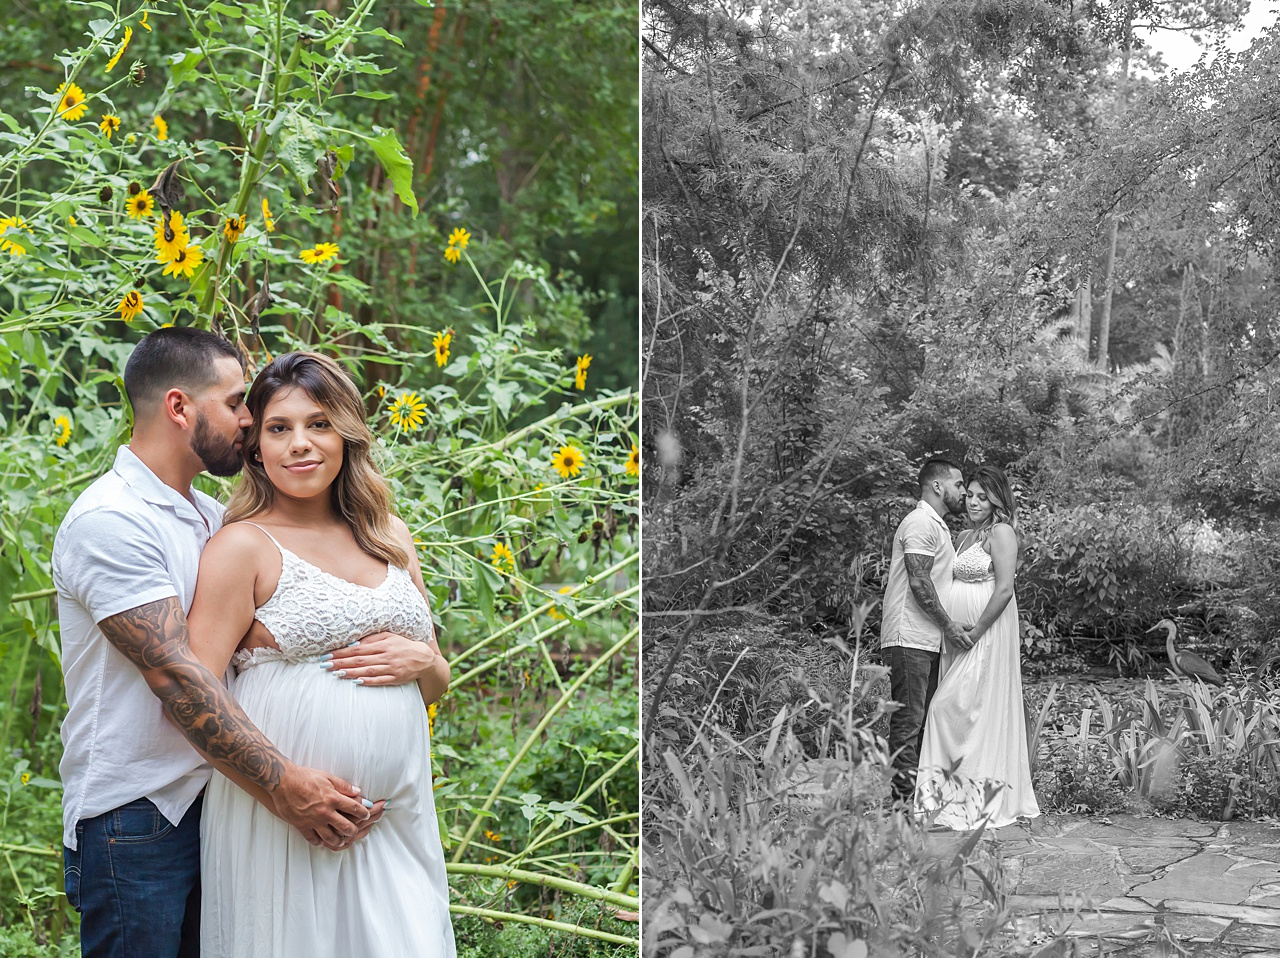 romantic maternity photo session at mercer arboretum by kristal bean photography